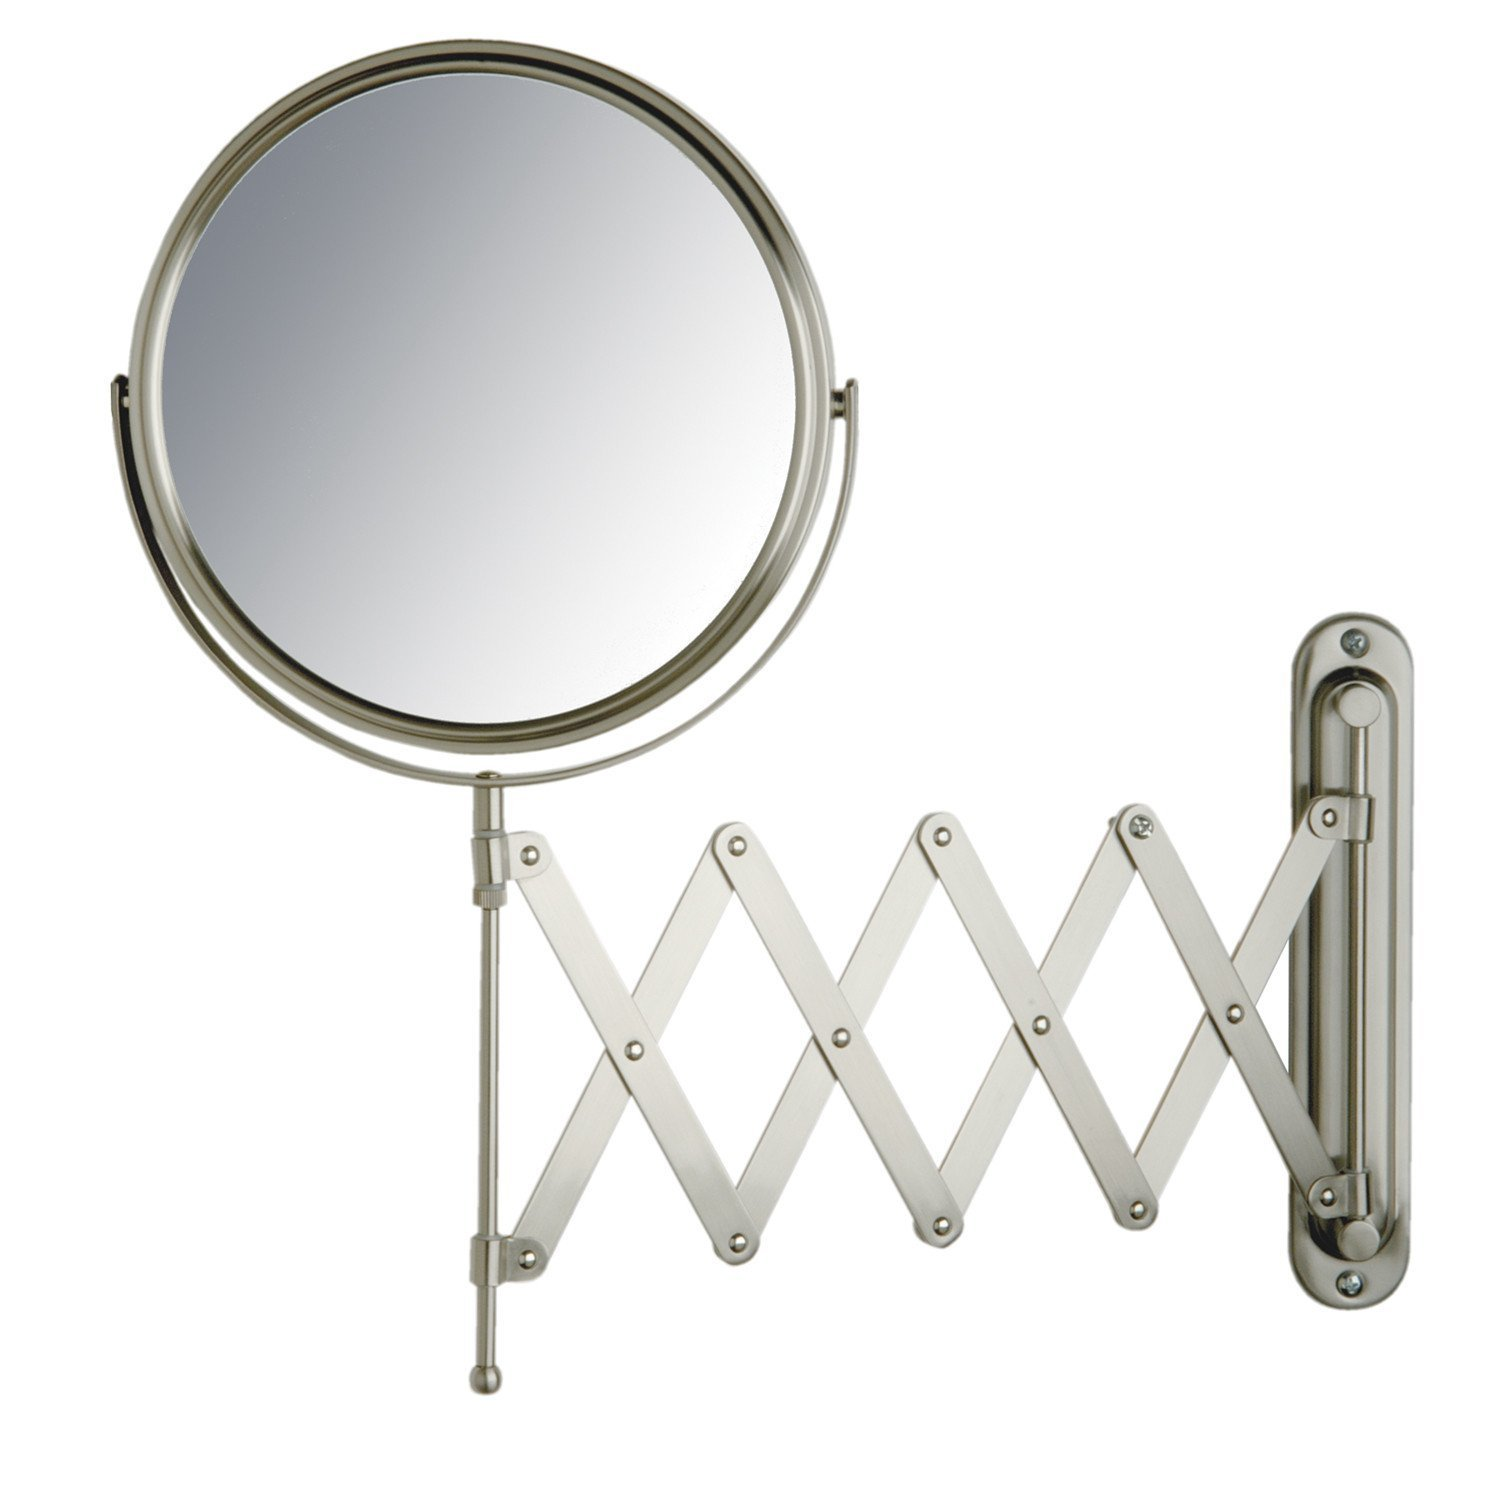 Amazon.com : Jerdon JP2027N 8-Inch Wall Mount Makeup Mirror with 7x ...